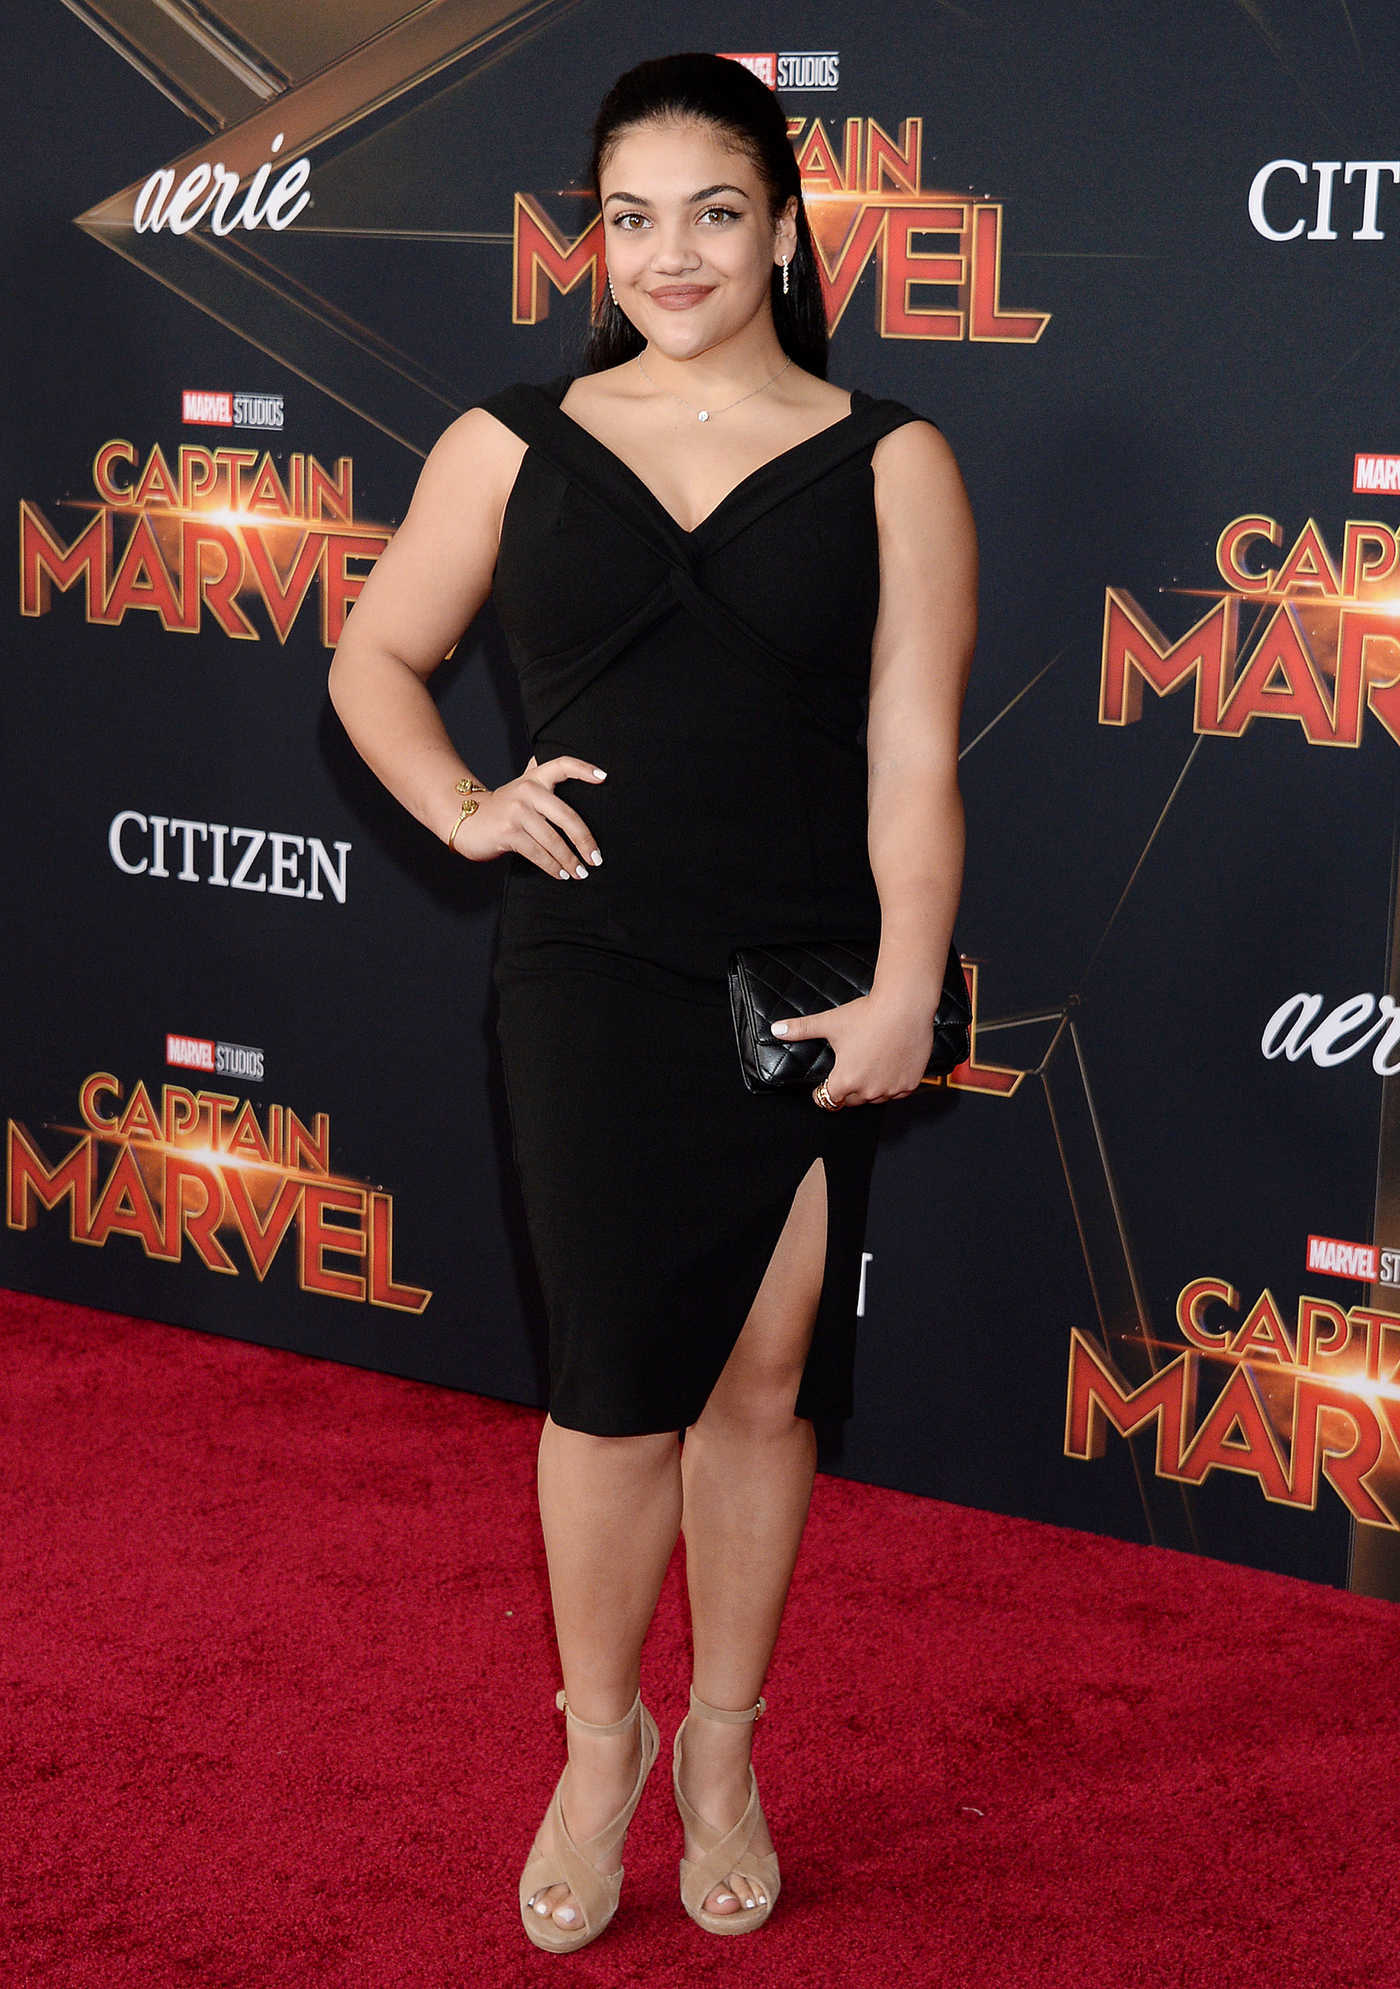 Laurie Hernandez Attends the Captain Marvel Premiere at the El Capitan Theatre in Los Angeles 03/04/2019